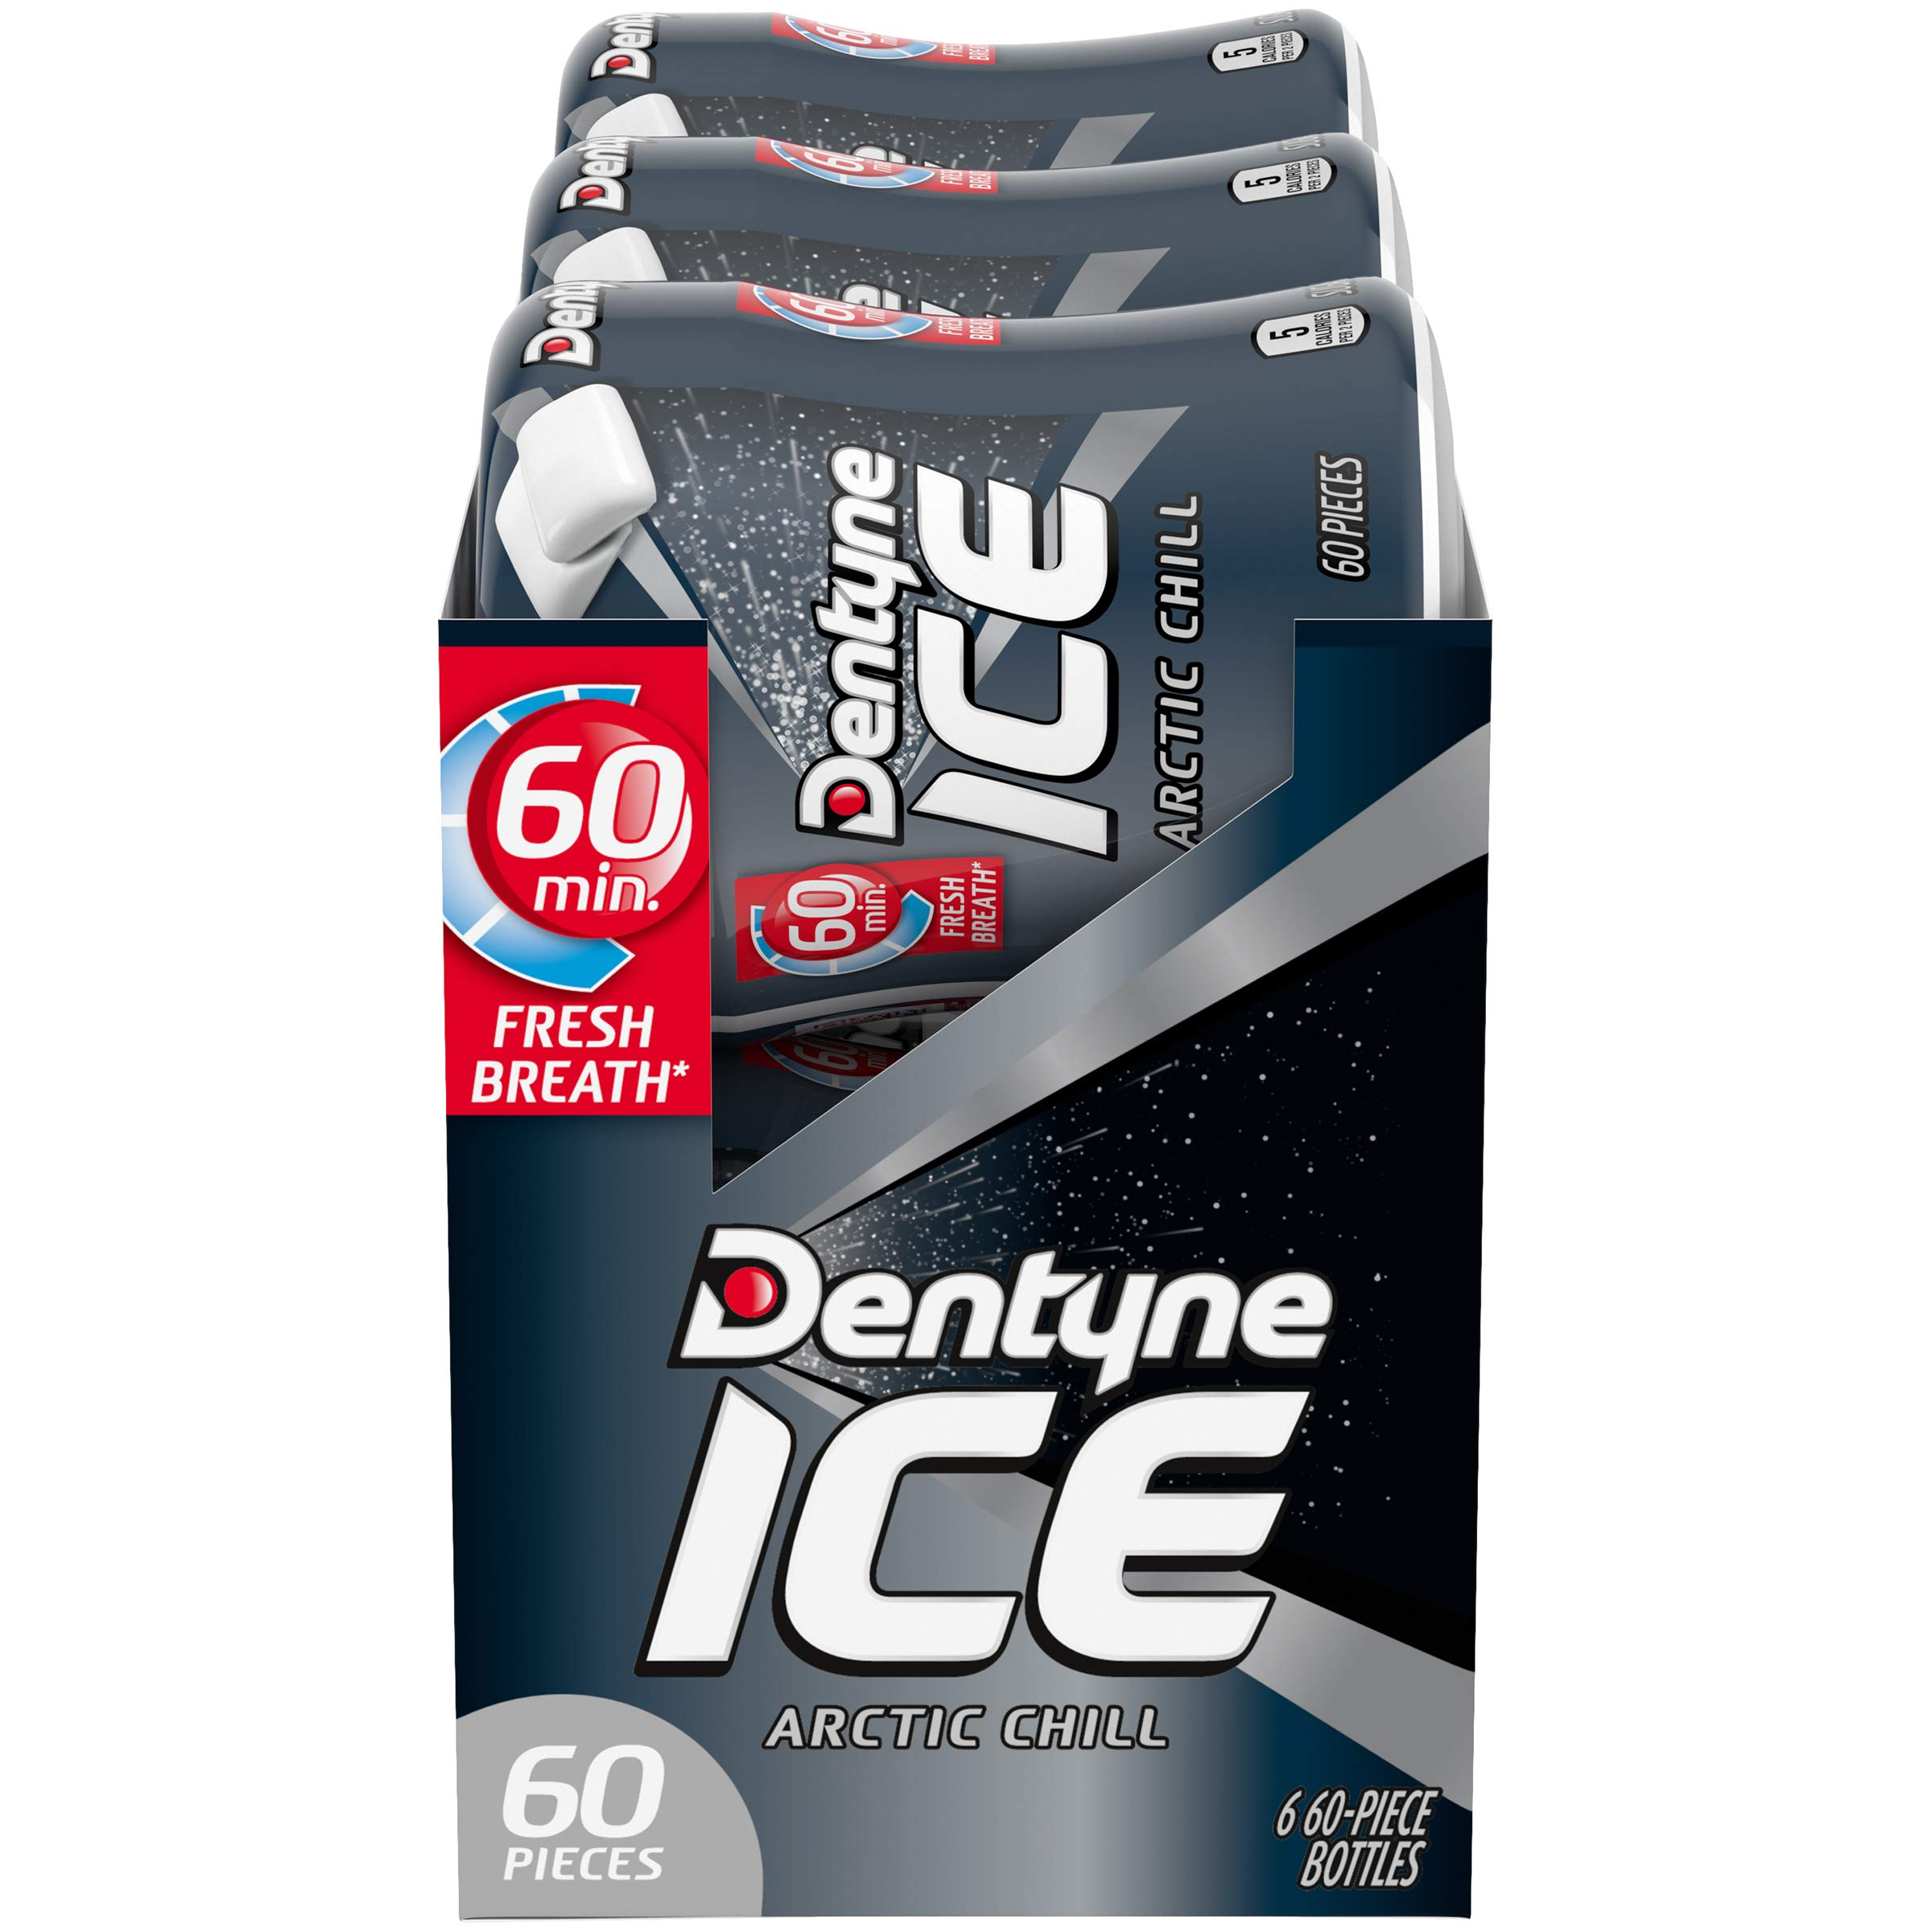 Dentyne Ice Sugar Free Gum (Arctic Chill  60 Piece  Pack of 6) by Dentyne